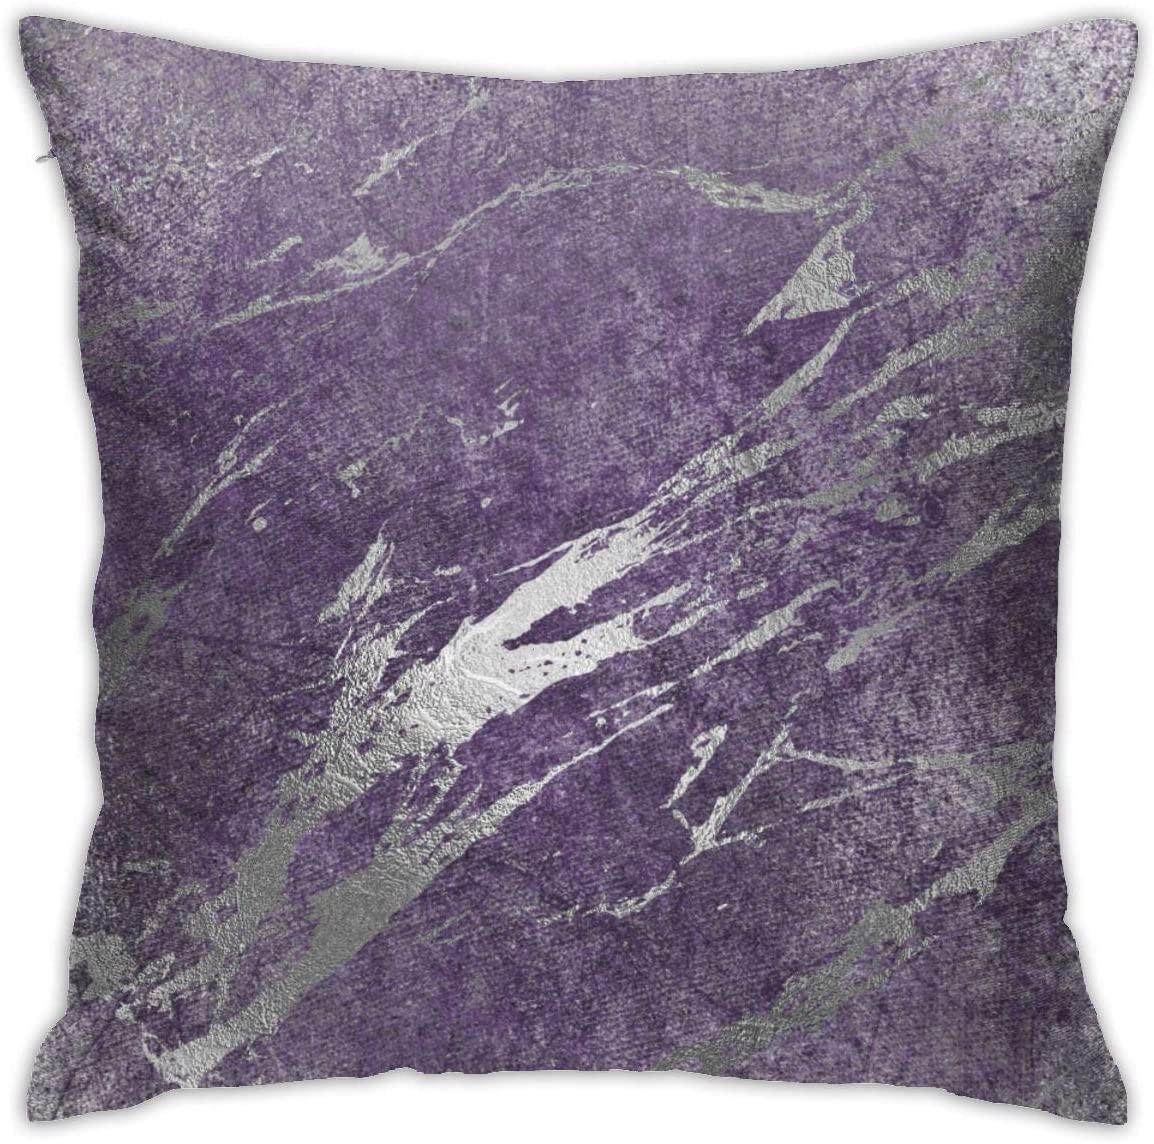 N/A Home Gift Pillow Sofa Cushion Silver Purple Gray Marble Shiny Metallic Strokes Couple party decoration 18X18inch(45CMX45CM)